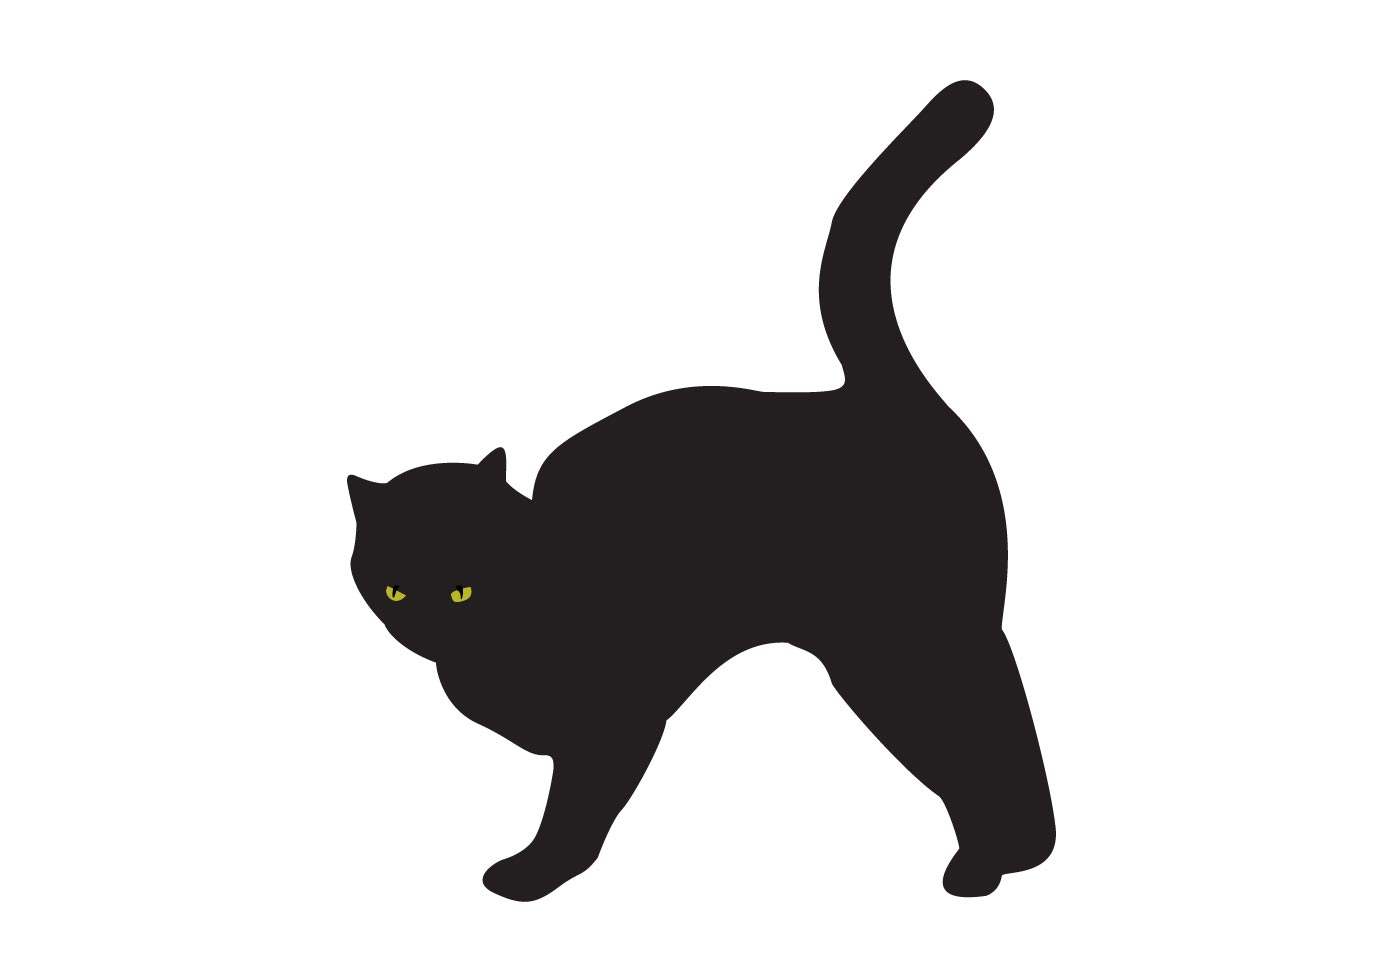 And white silhouette at. Cat clip art spooky black svg free stock